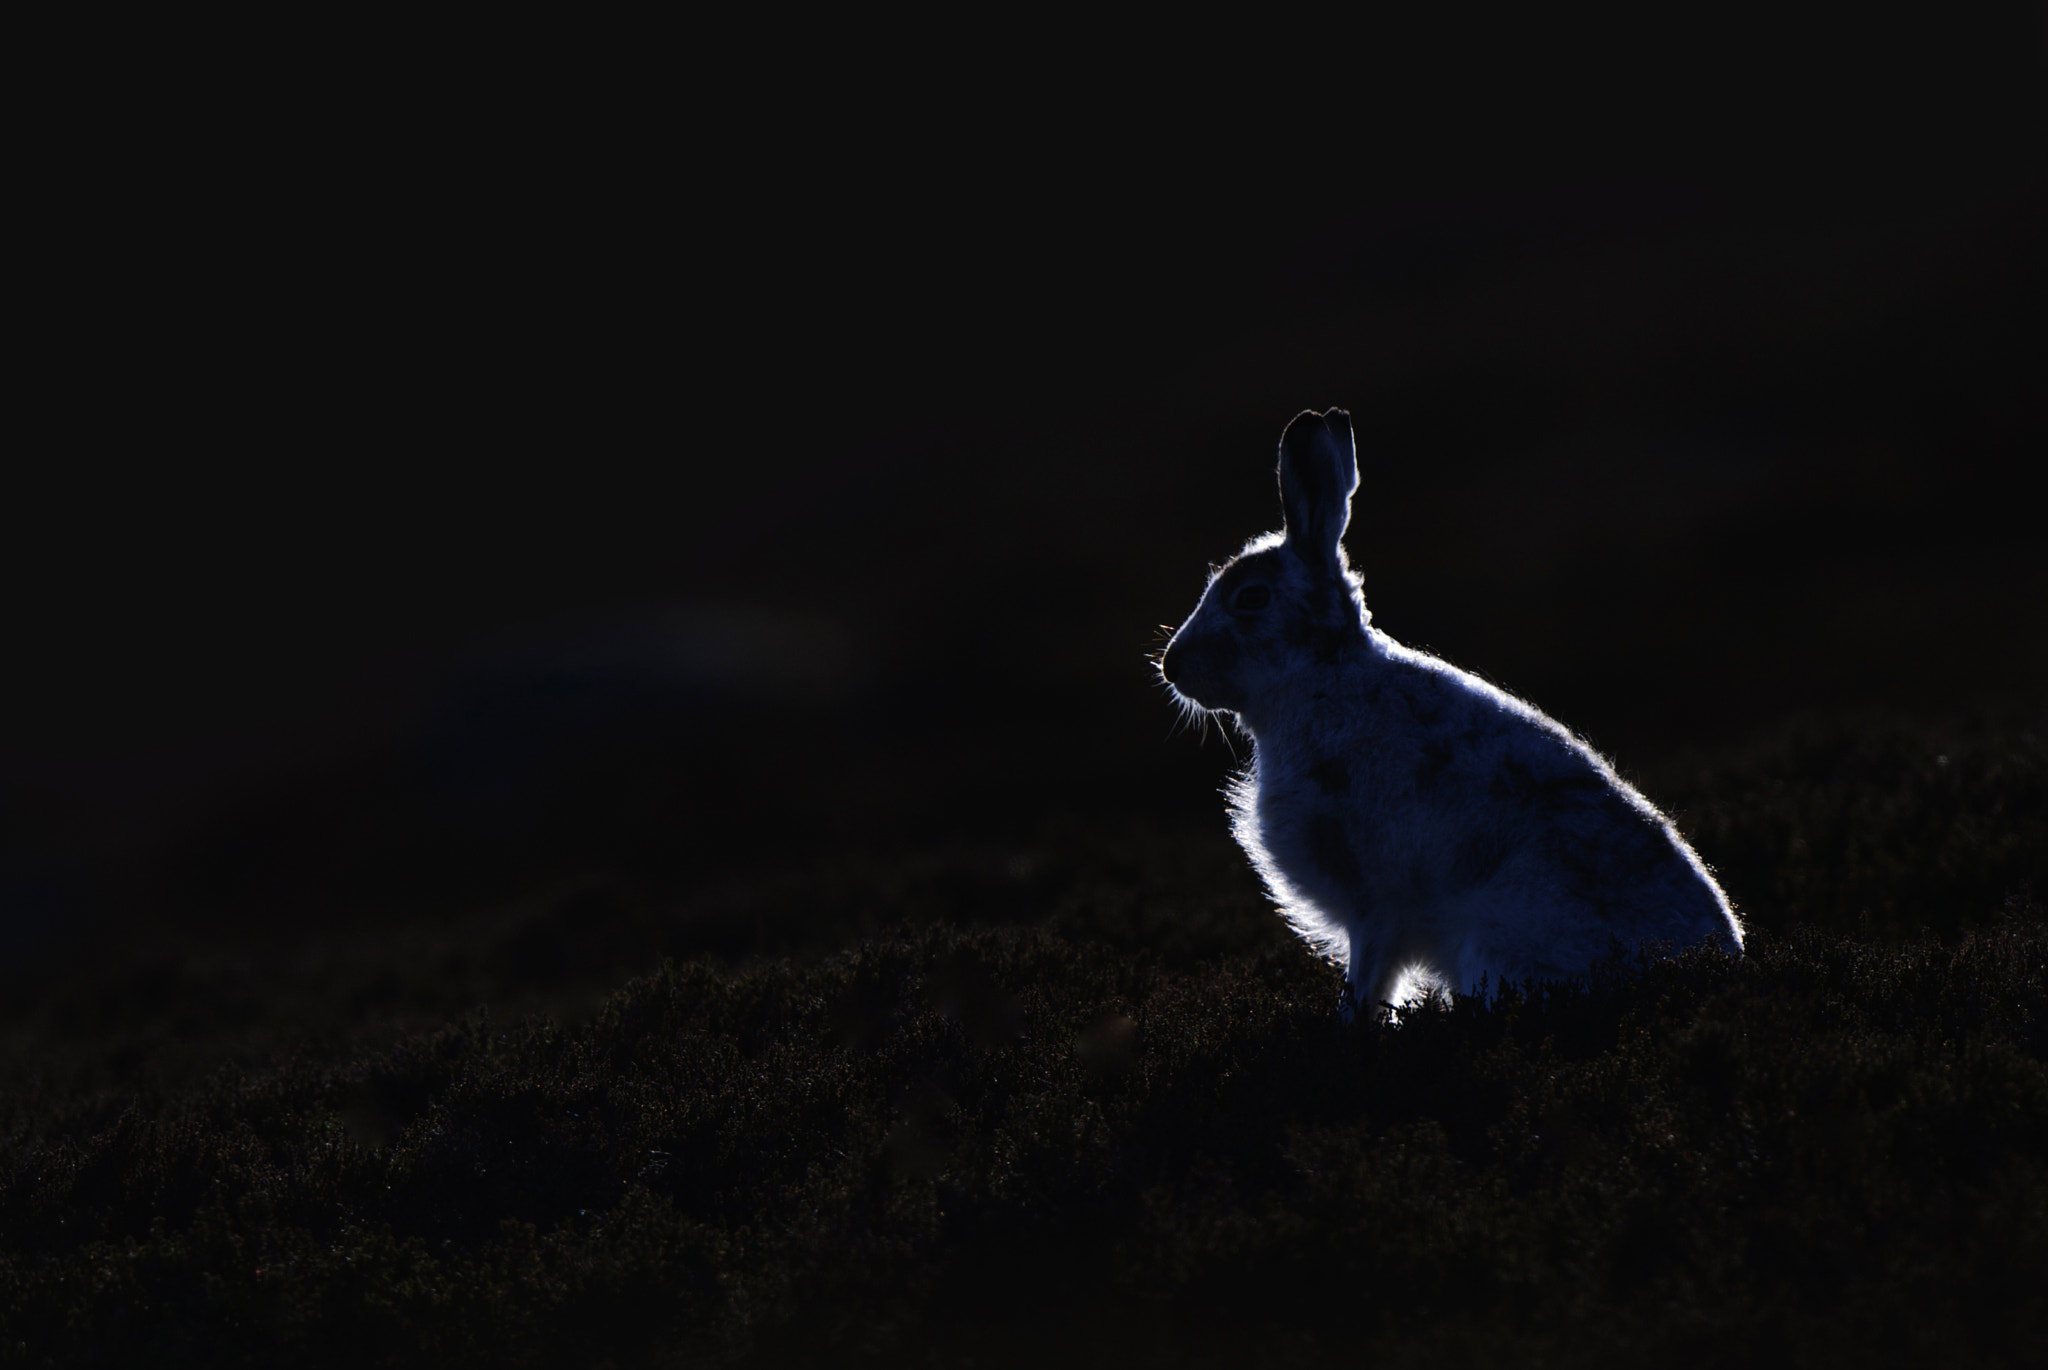 Photograph Backlit Mountain hare by charlotte sams on 500px